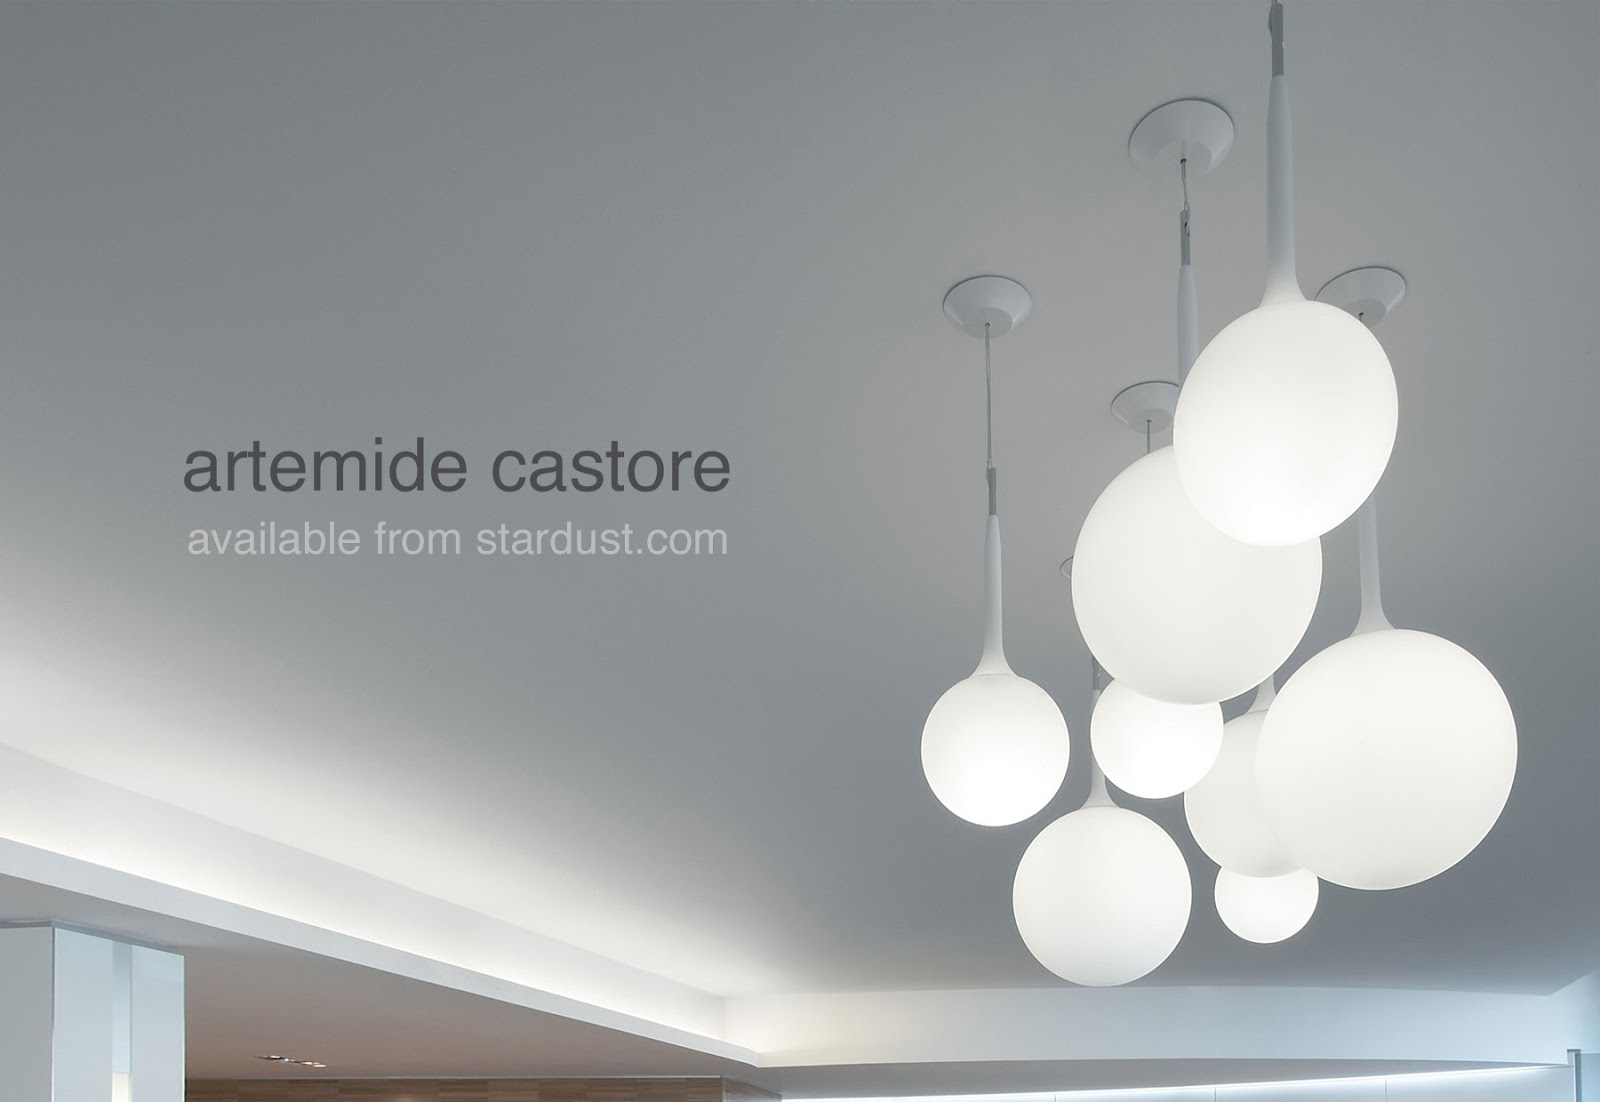 castore glass ball pendant light fixture in opal white glass with white ceiling canopy ball pendant lighting